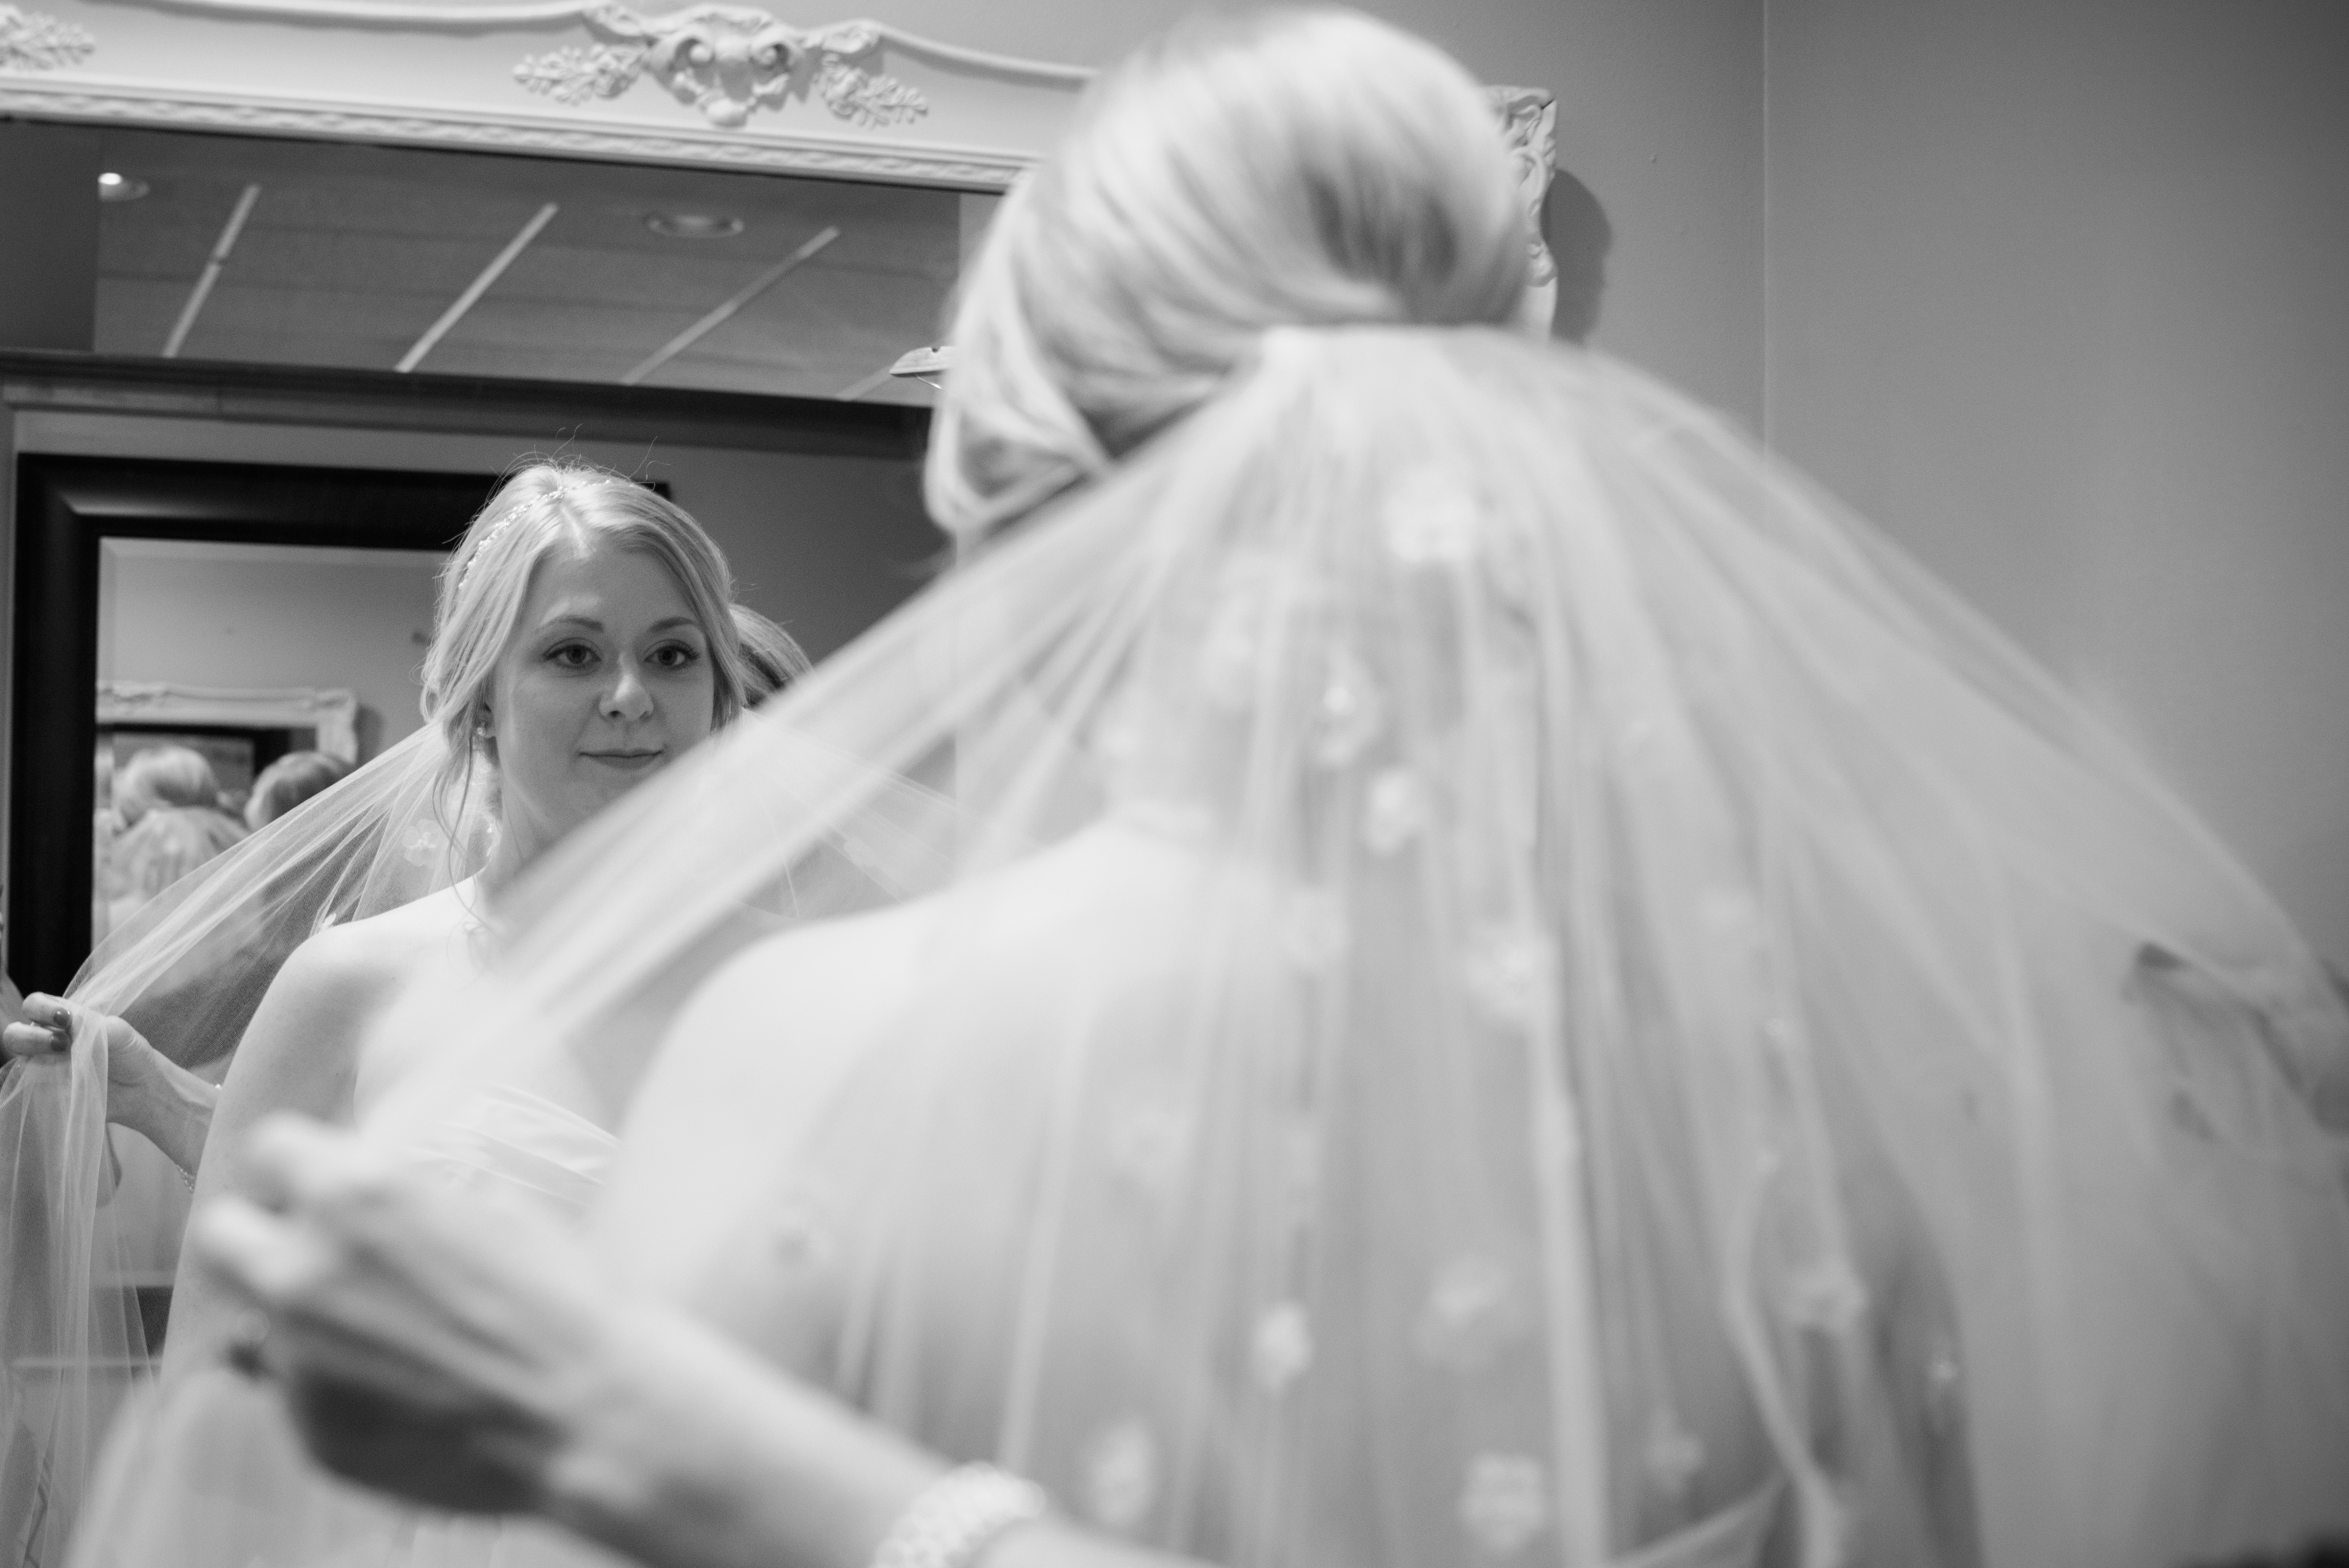 Bride sees herself in mirror